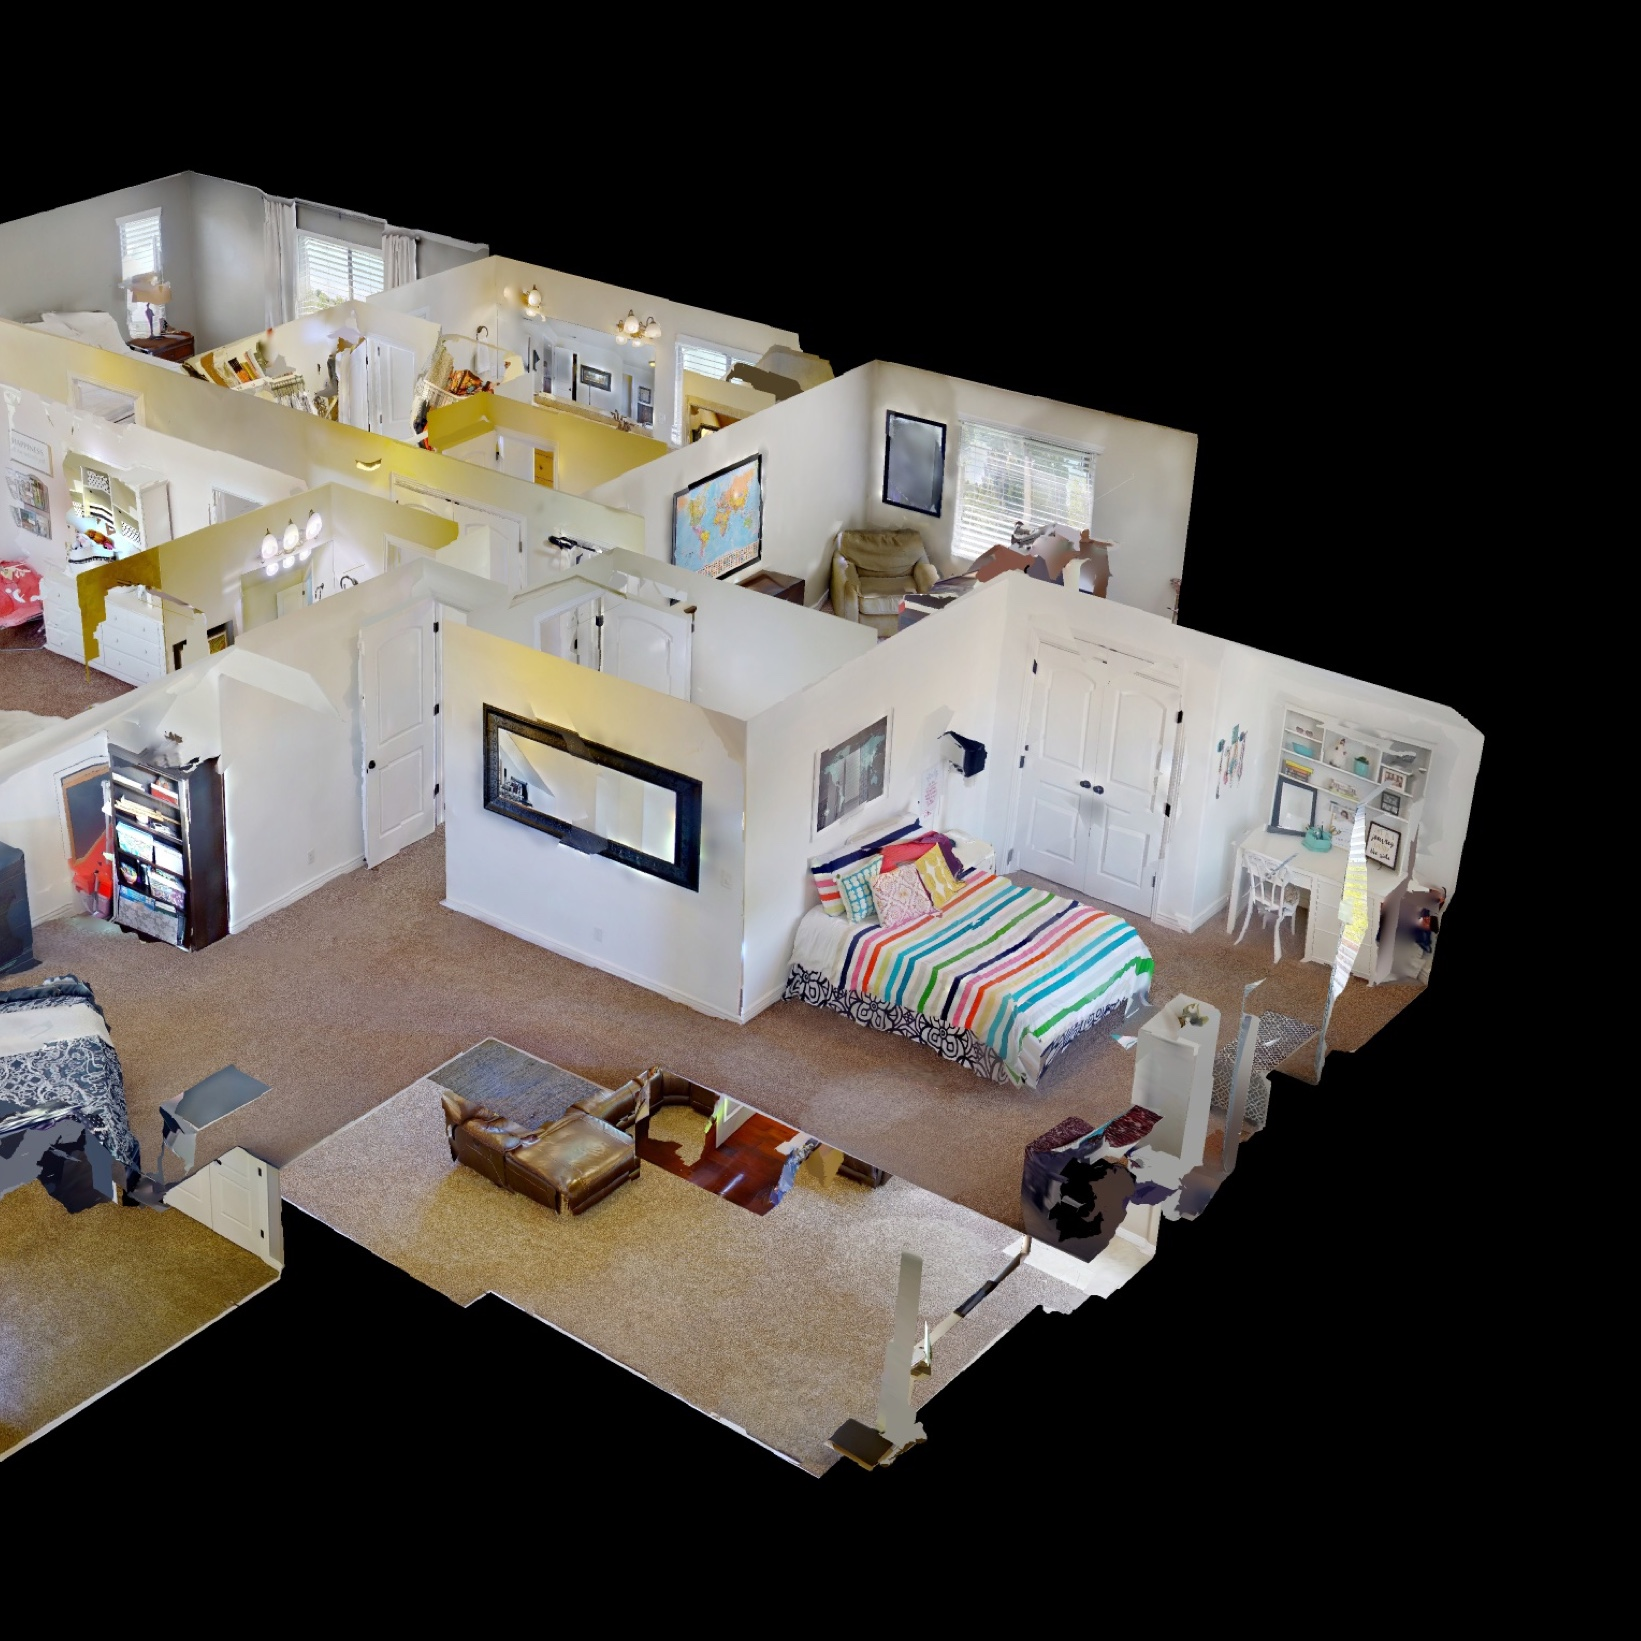 A bird's eye view of a Matterport model, mapping the rooms of a two-story house